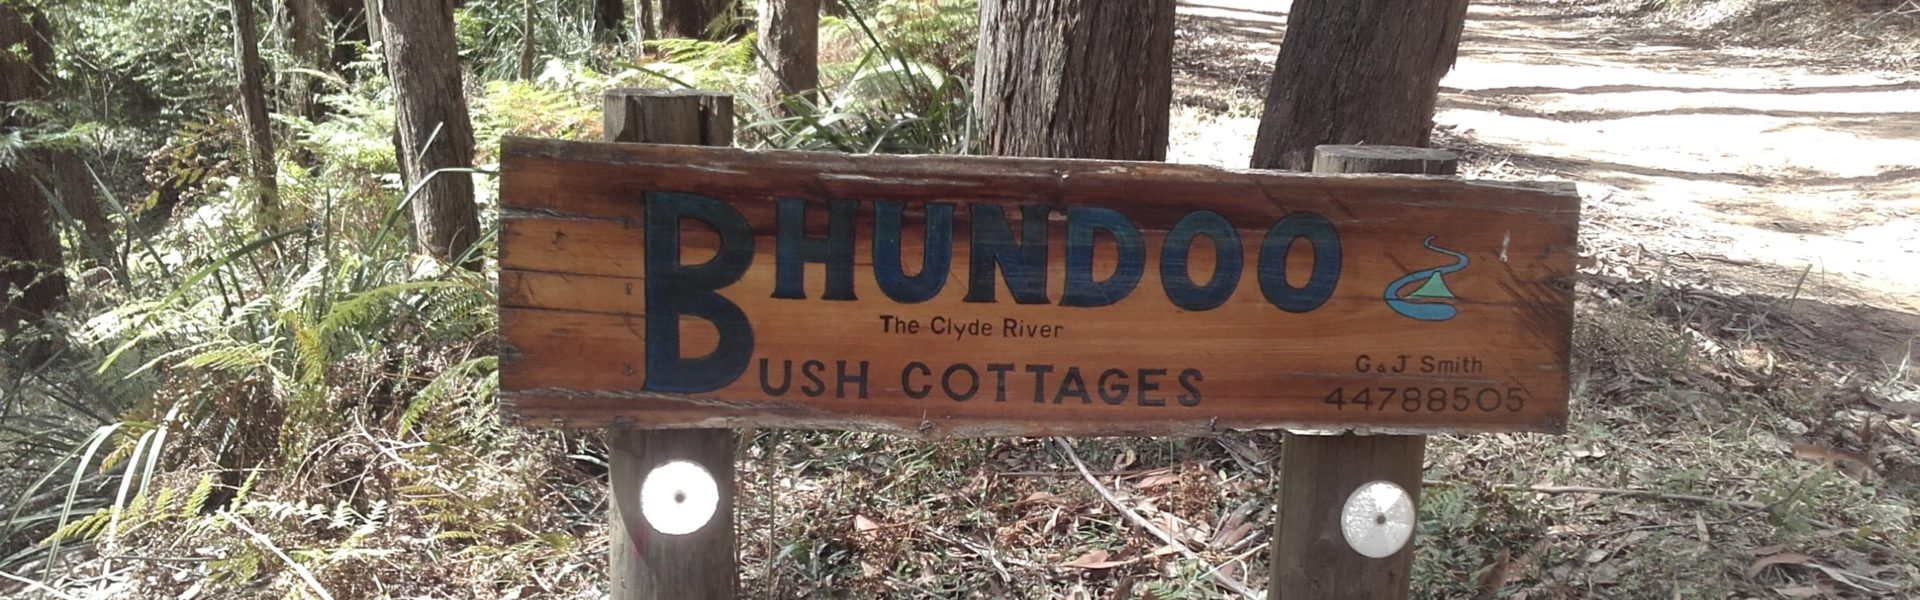 Bhundoo Bush Cottages